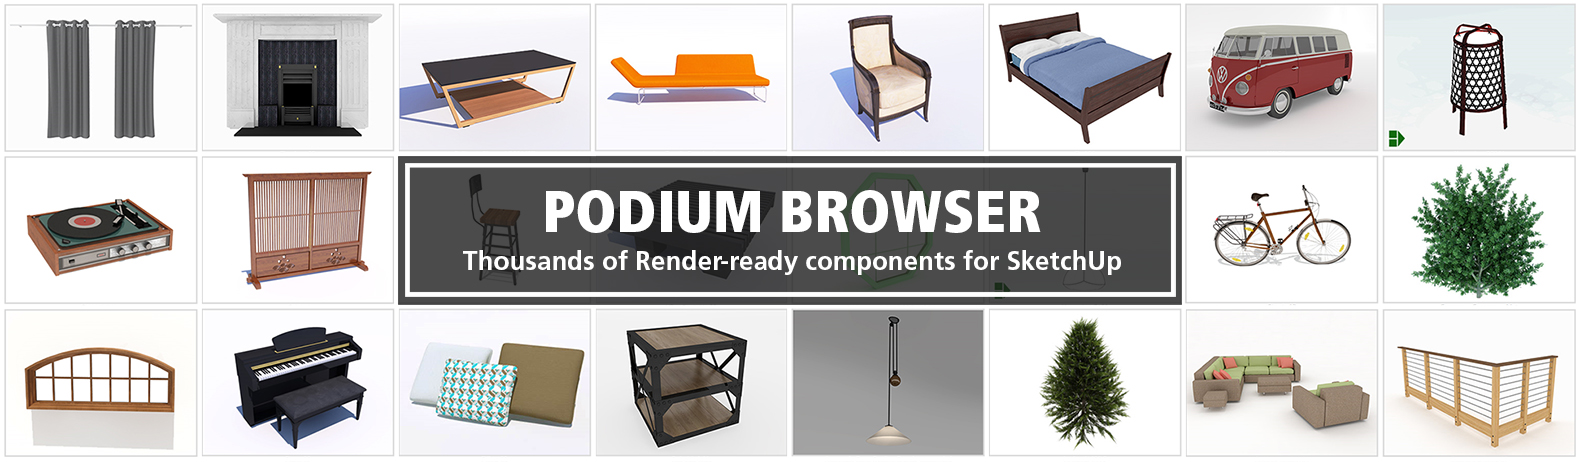 Podium Browser for SketchUp